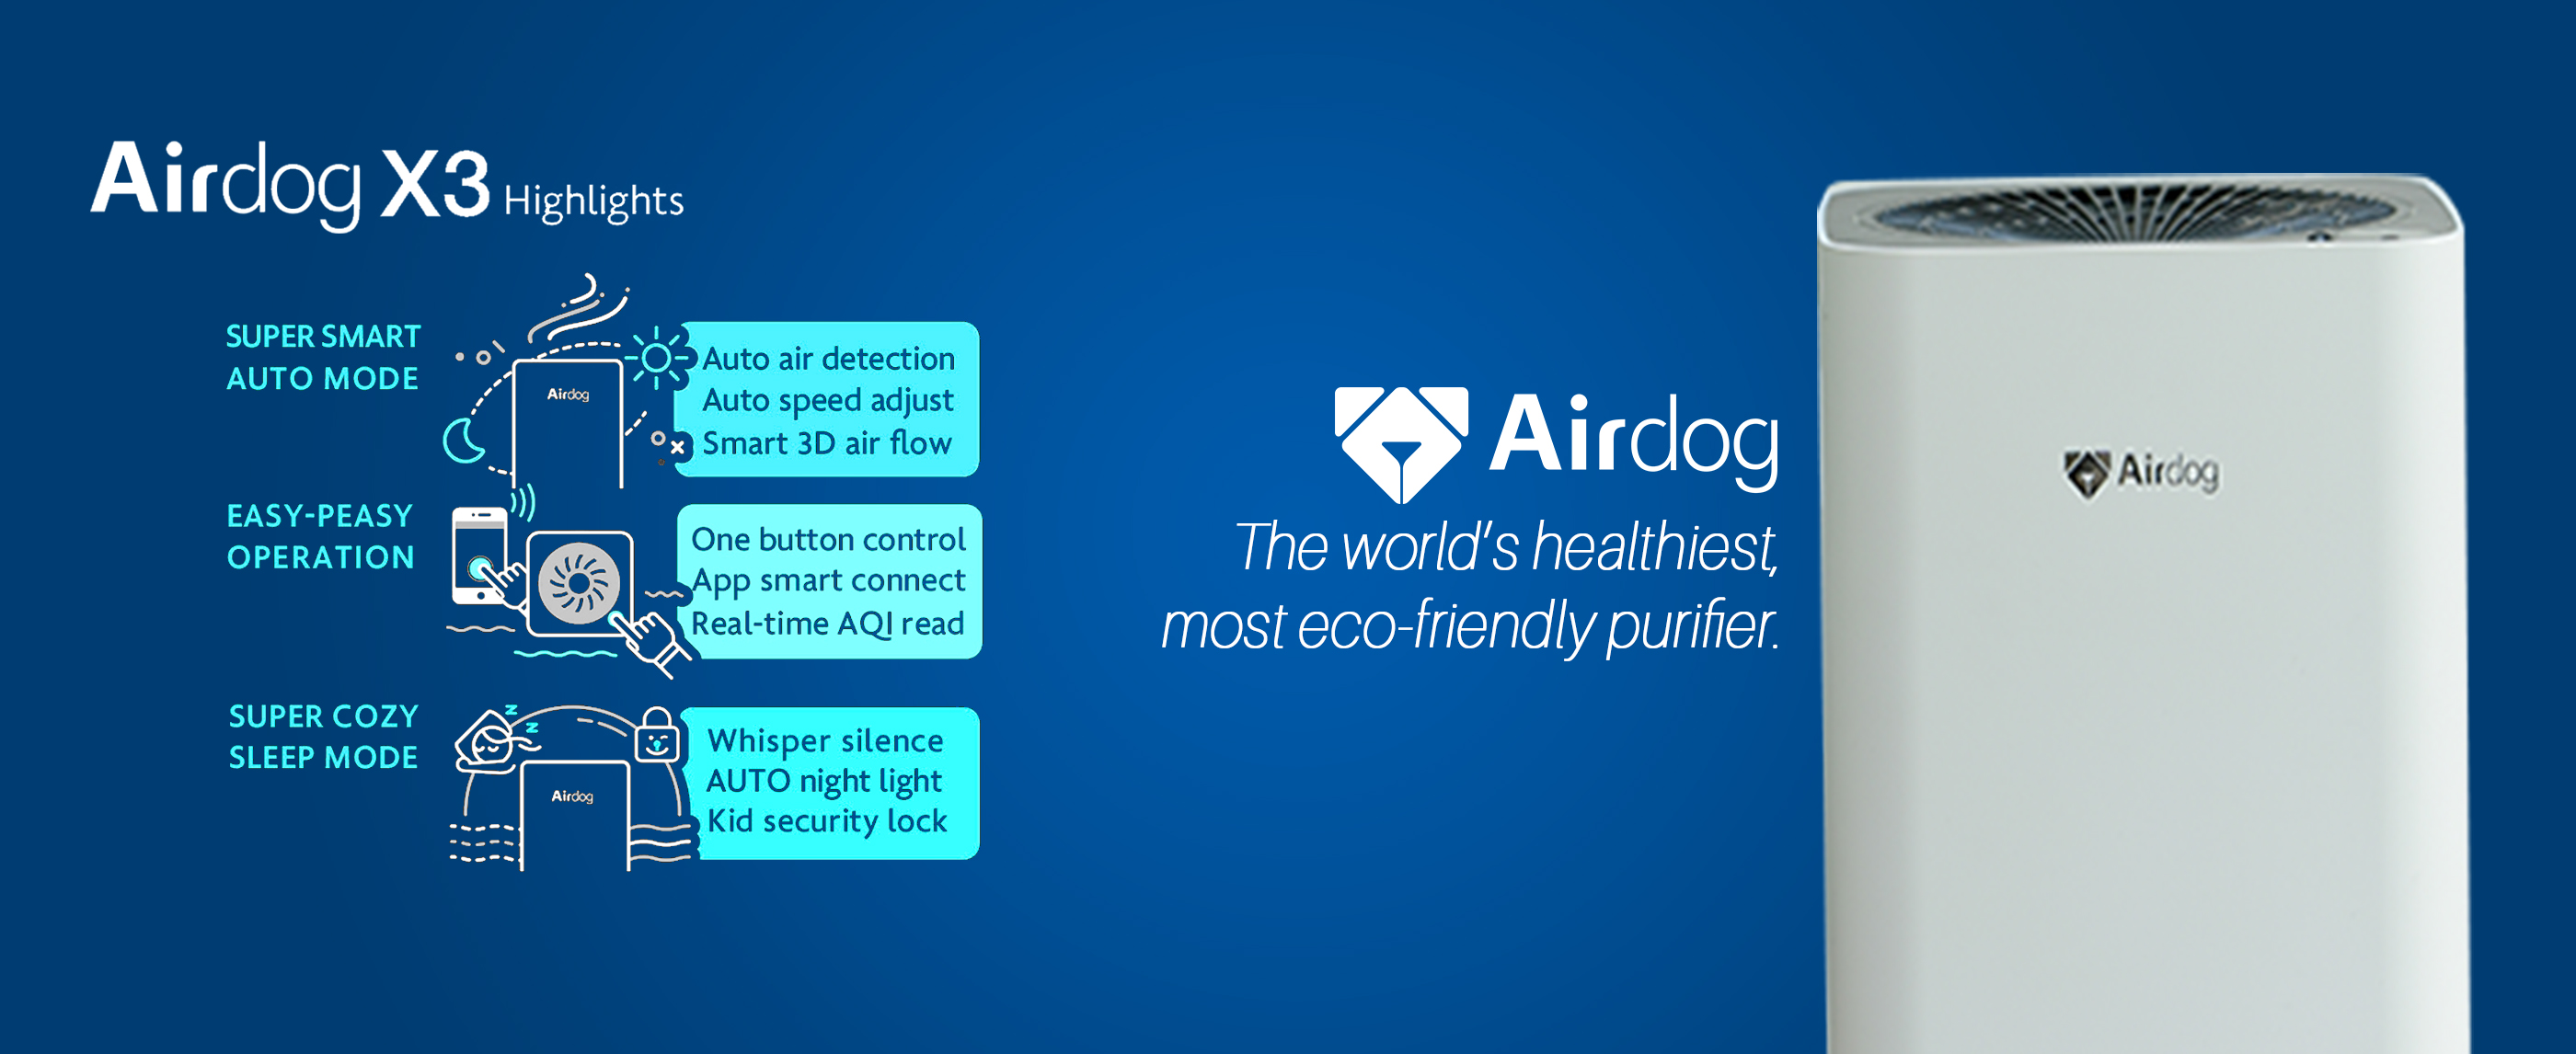 AIRDOG KEEPS YOU SAFE IN THE COVID-19 PANDEMIC.